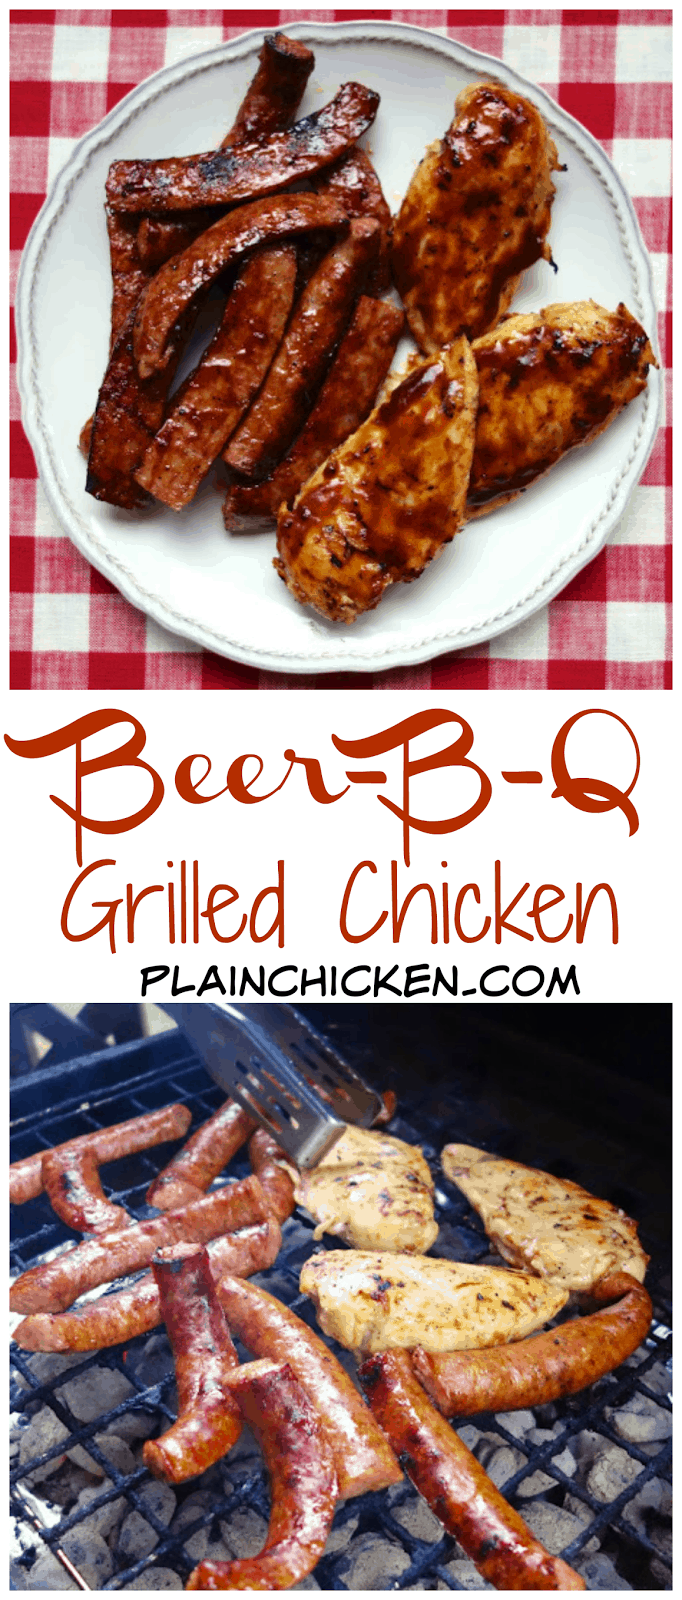 Beer-B-Q Grilled Chicken - chicken marinated in a quick beer and BBQ sauce mixture and grilled. Brush chicken with additional Beer-B-Q sauce mixture. Also great on smoked sausage. This marinade is SO good! We ate this two nights in a row. People go nuts over this chicken!